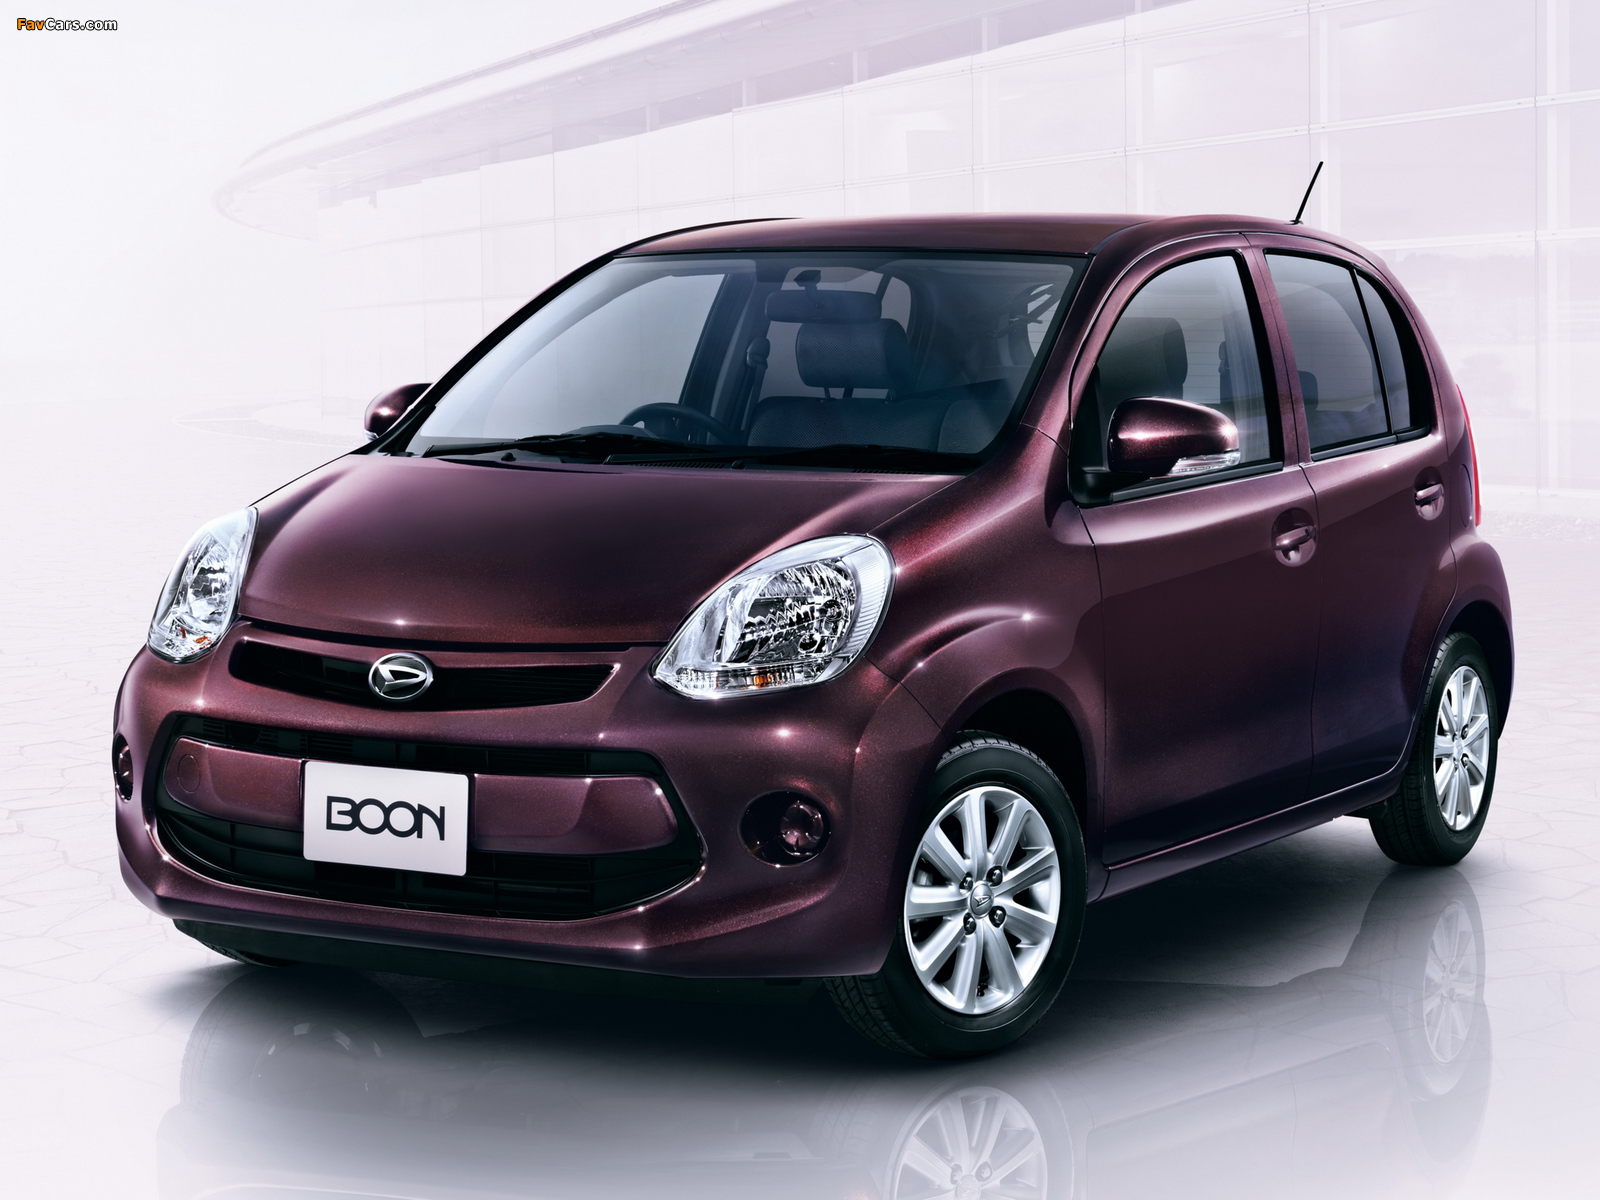 Daihatsu Boon 2014 wallpapers (1600 x 1200)